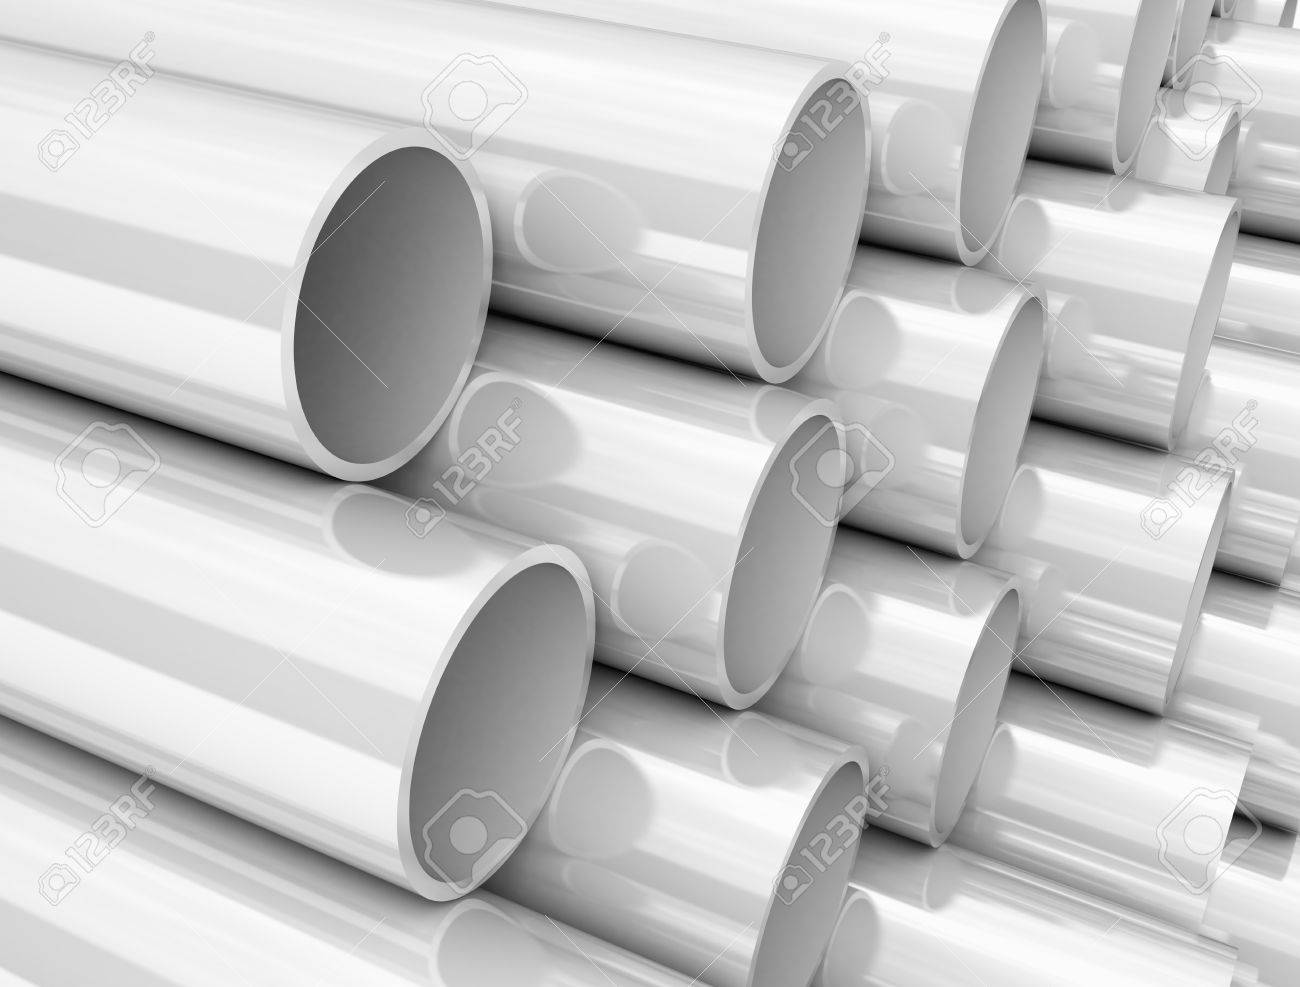 Size Of PVC Pipes Stock Photo, Picture And Royalty Free Image ...